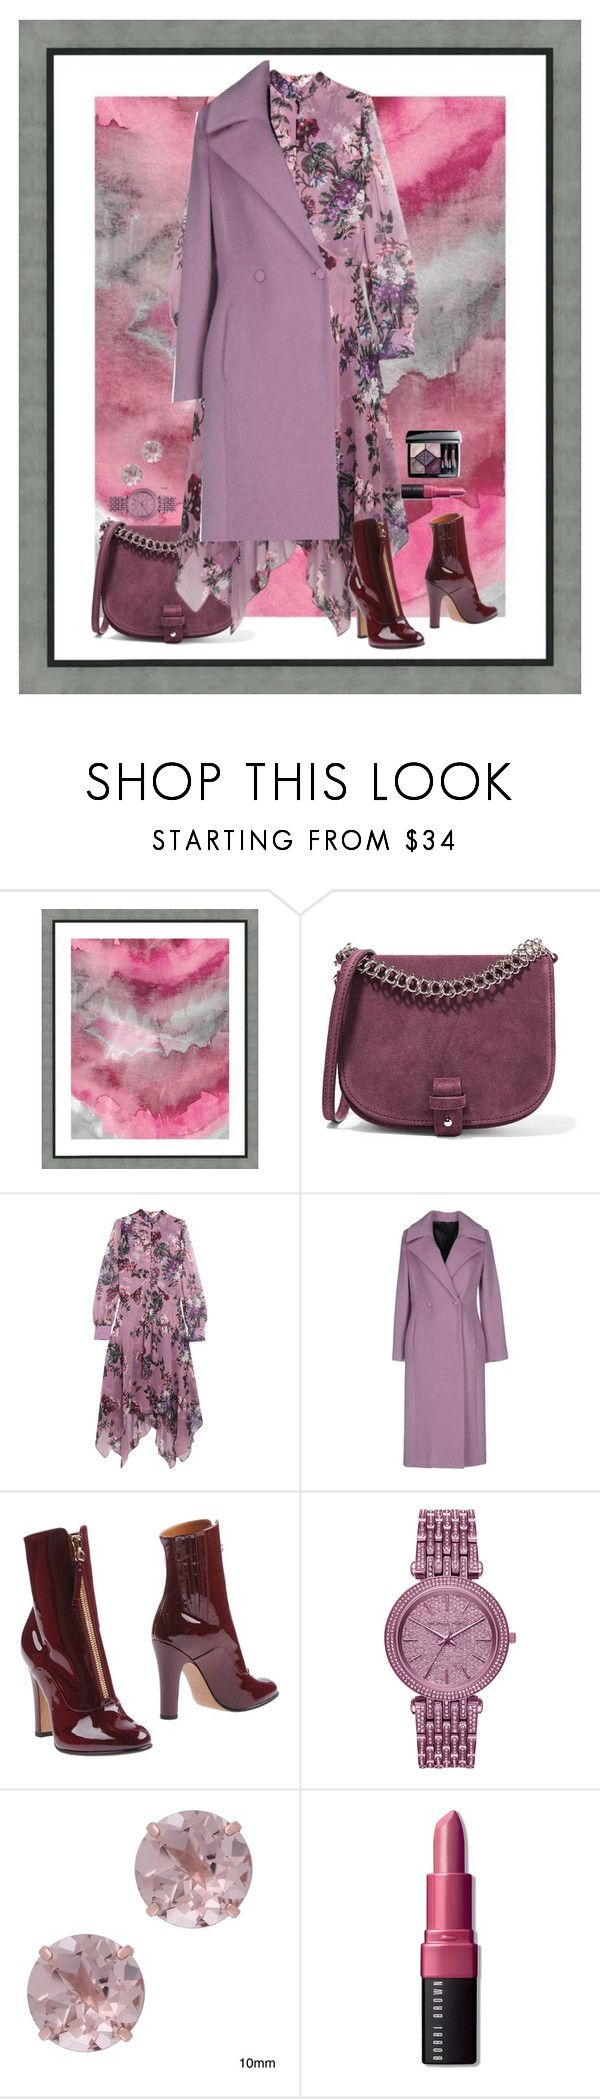 """""""All of they are Purple. Just boots are Red."""" by asmallant ❤ liked on Polyvore featuring Vintage Print Gallery, Little Liffner, Erdem, Carla G., Valentino, Michael Kors, Gioelli, Bobbi Brown Cosmetics and Christian Dior"""